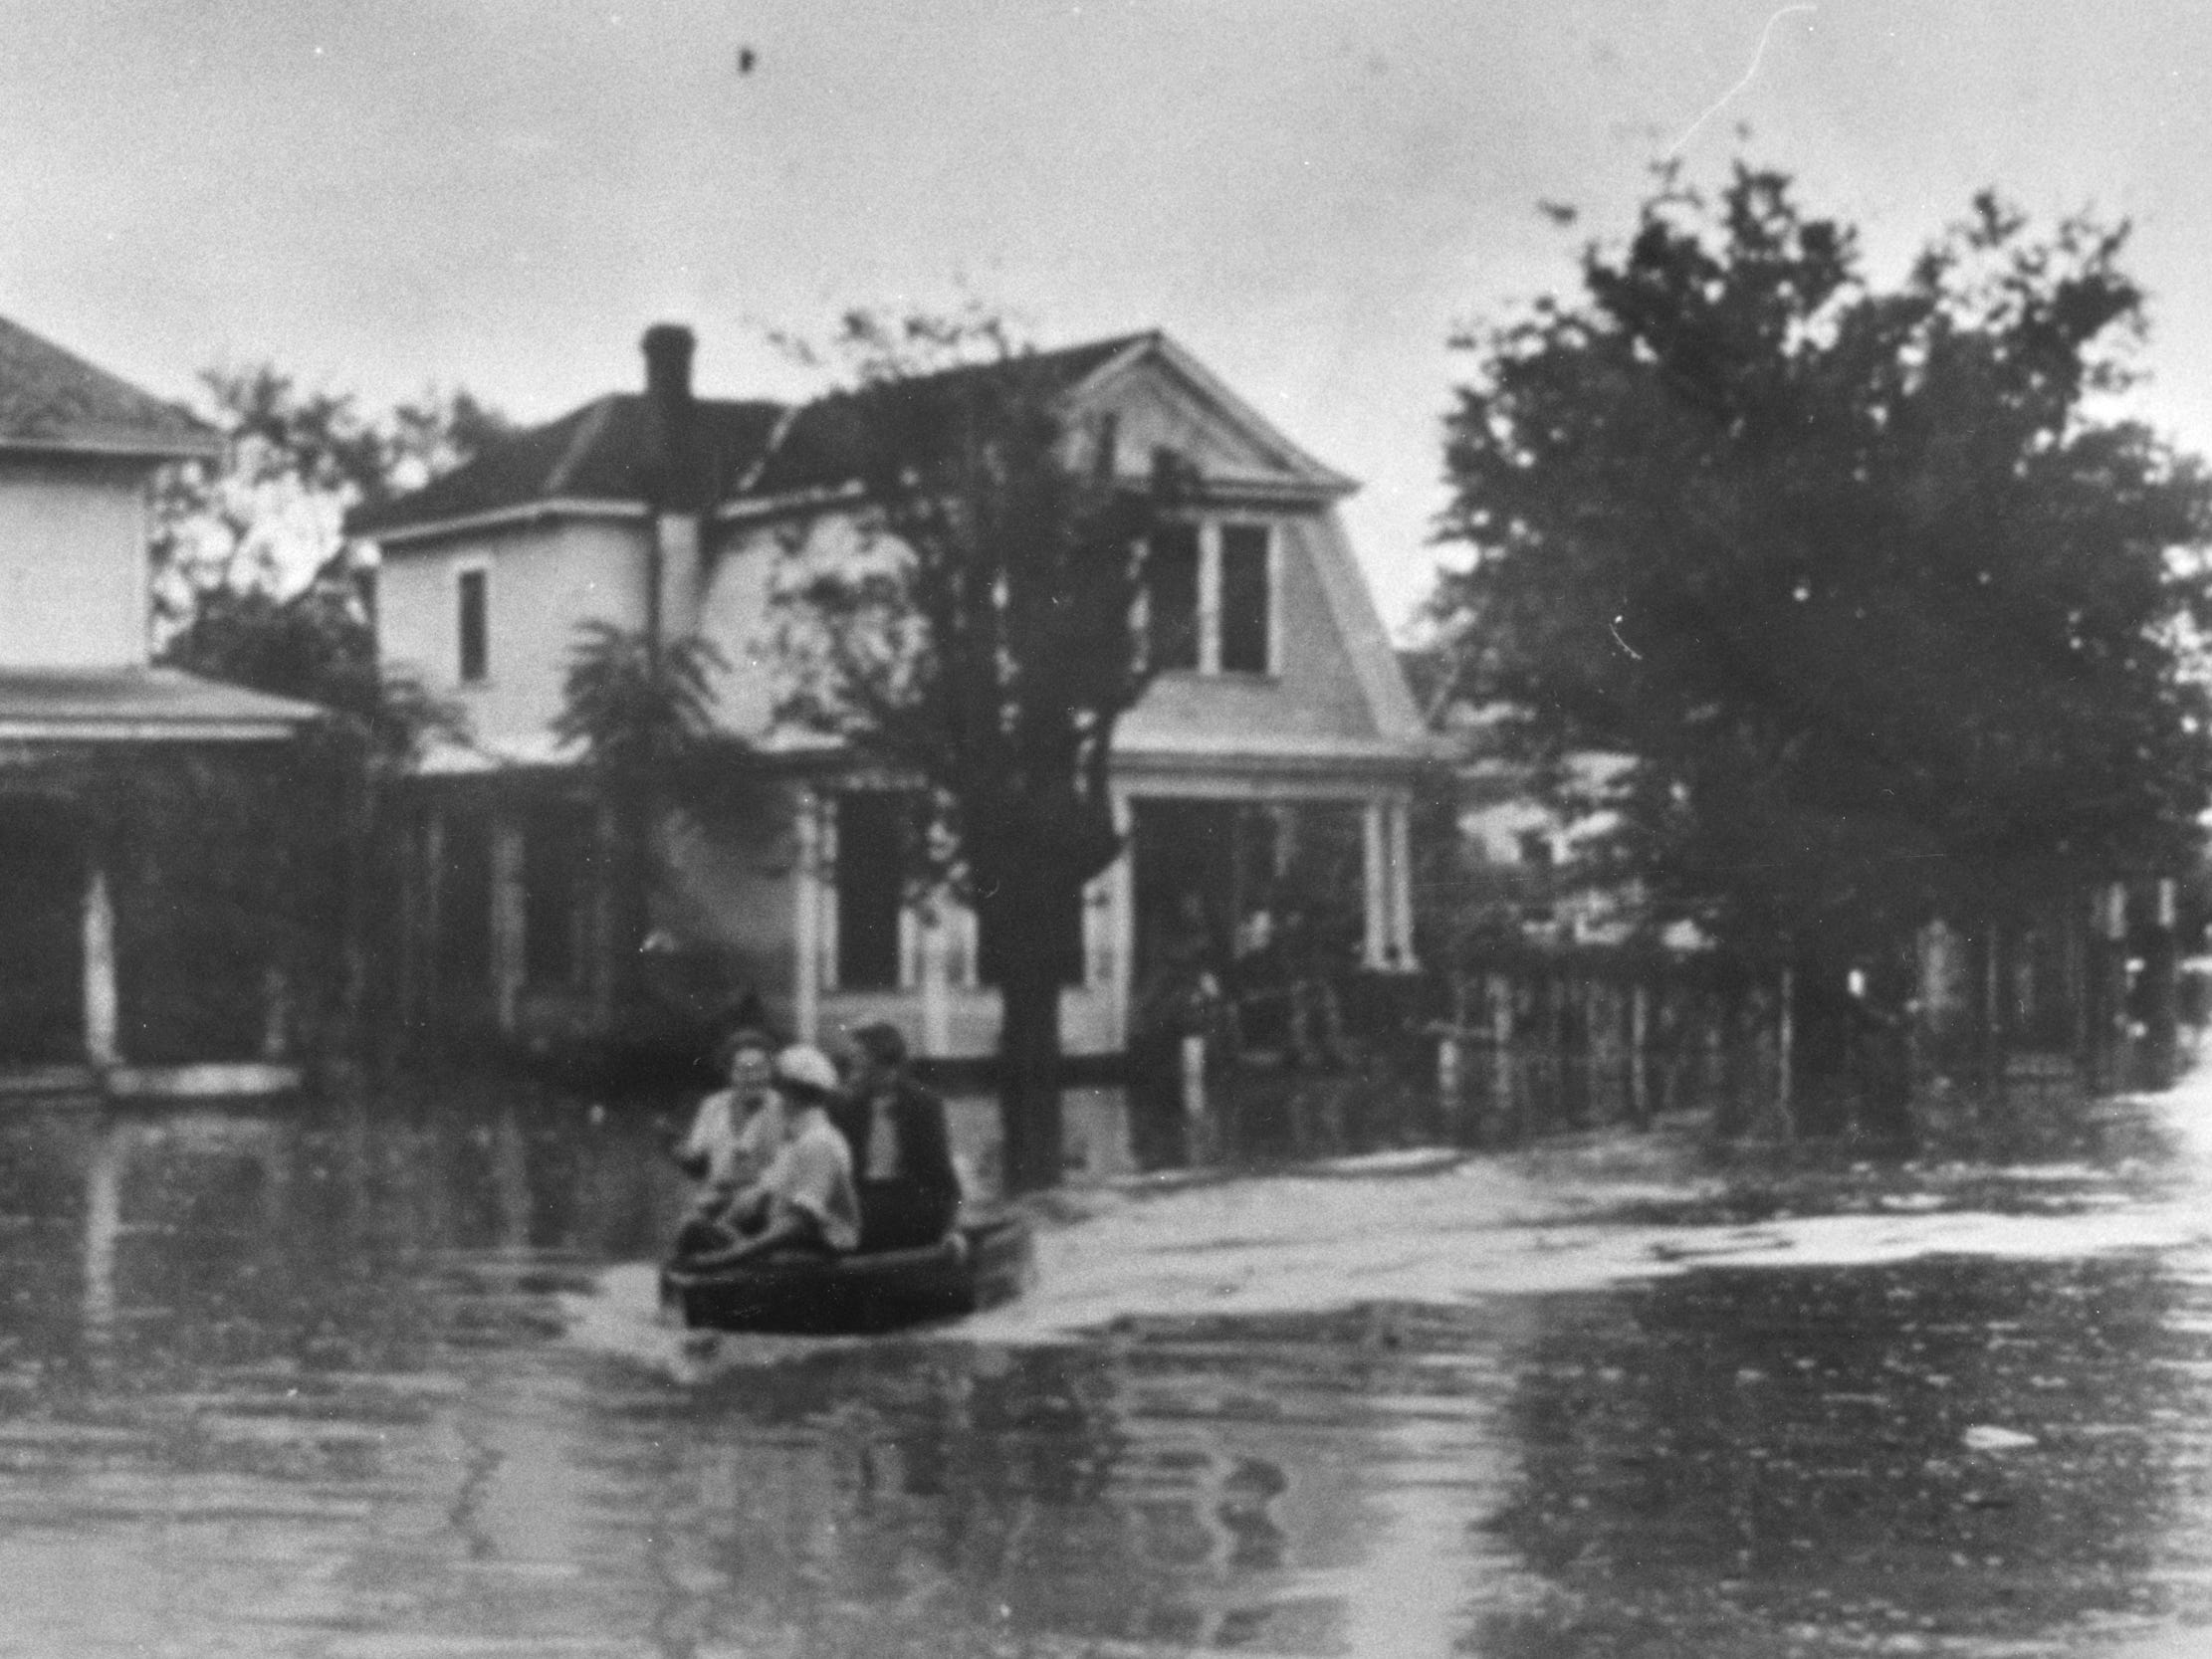 People boat on West Harris Avenue during the 1936 flood.